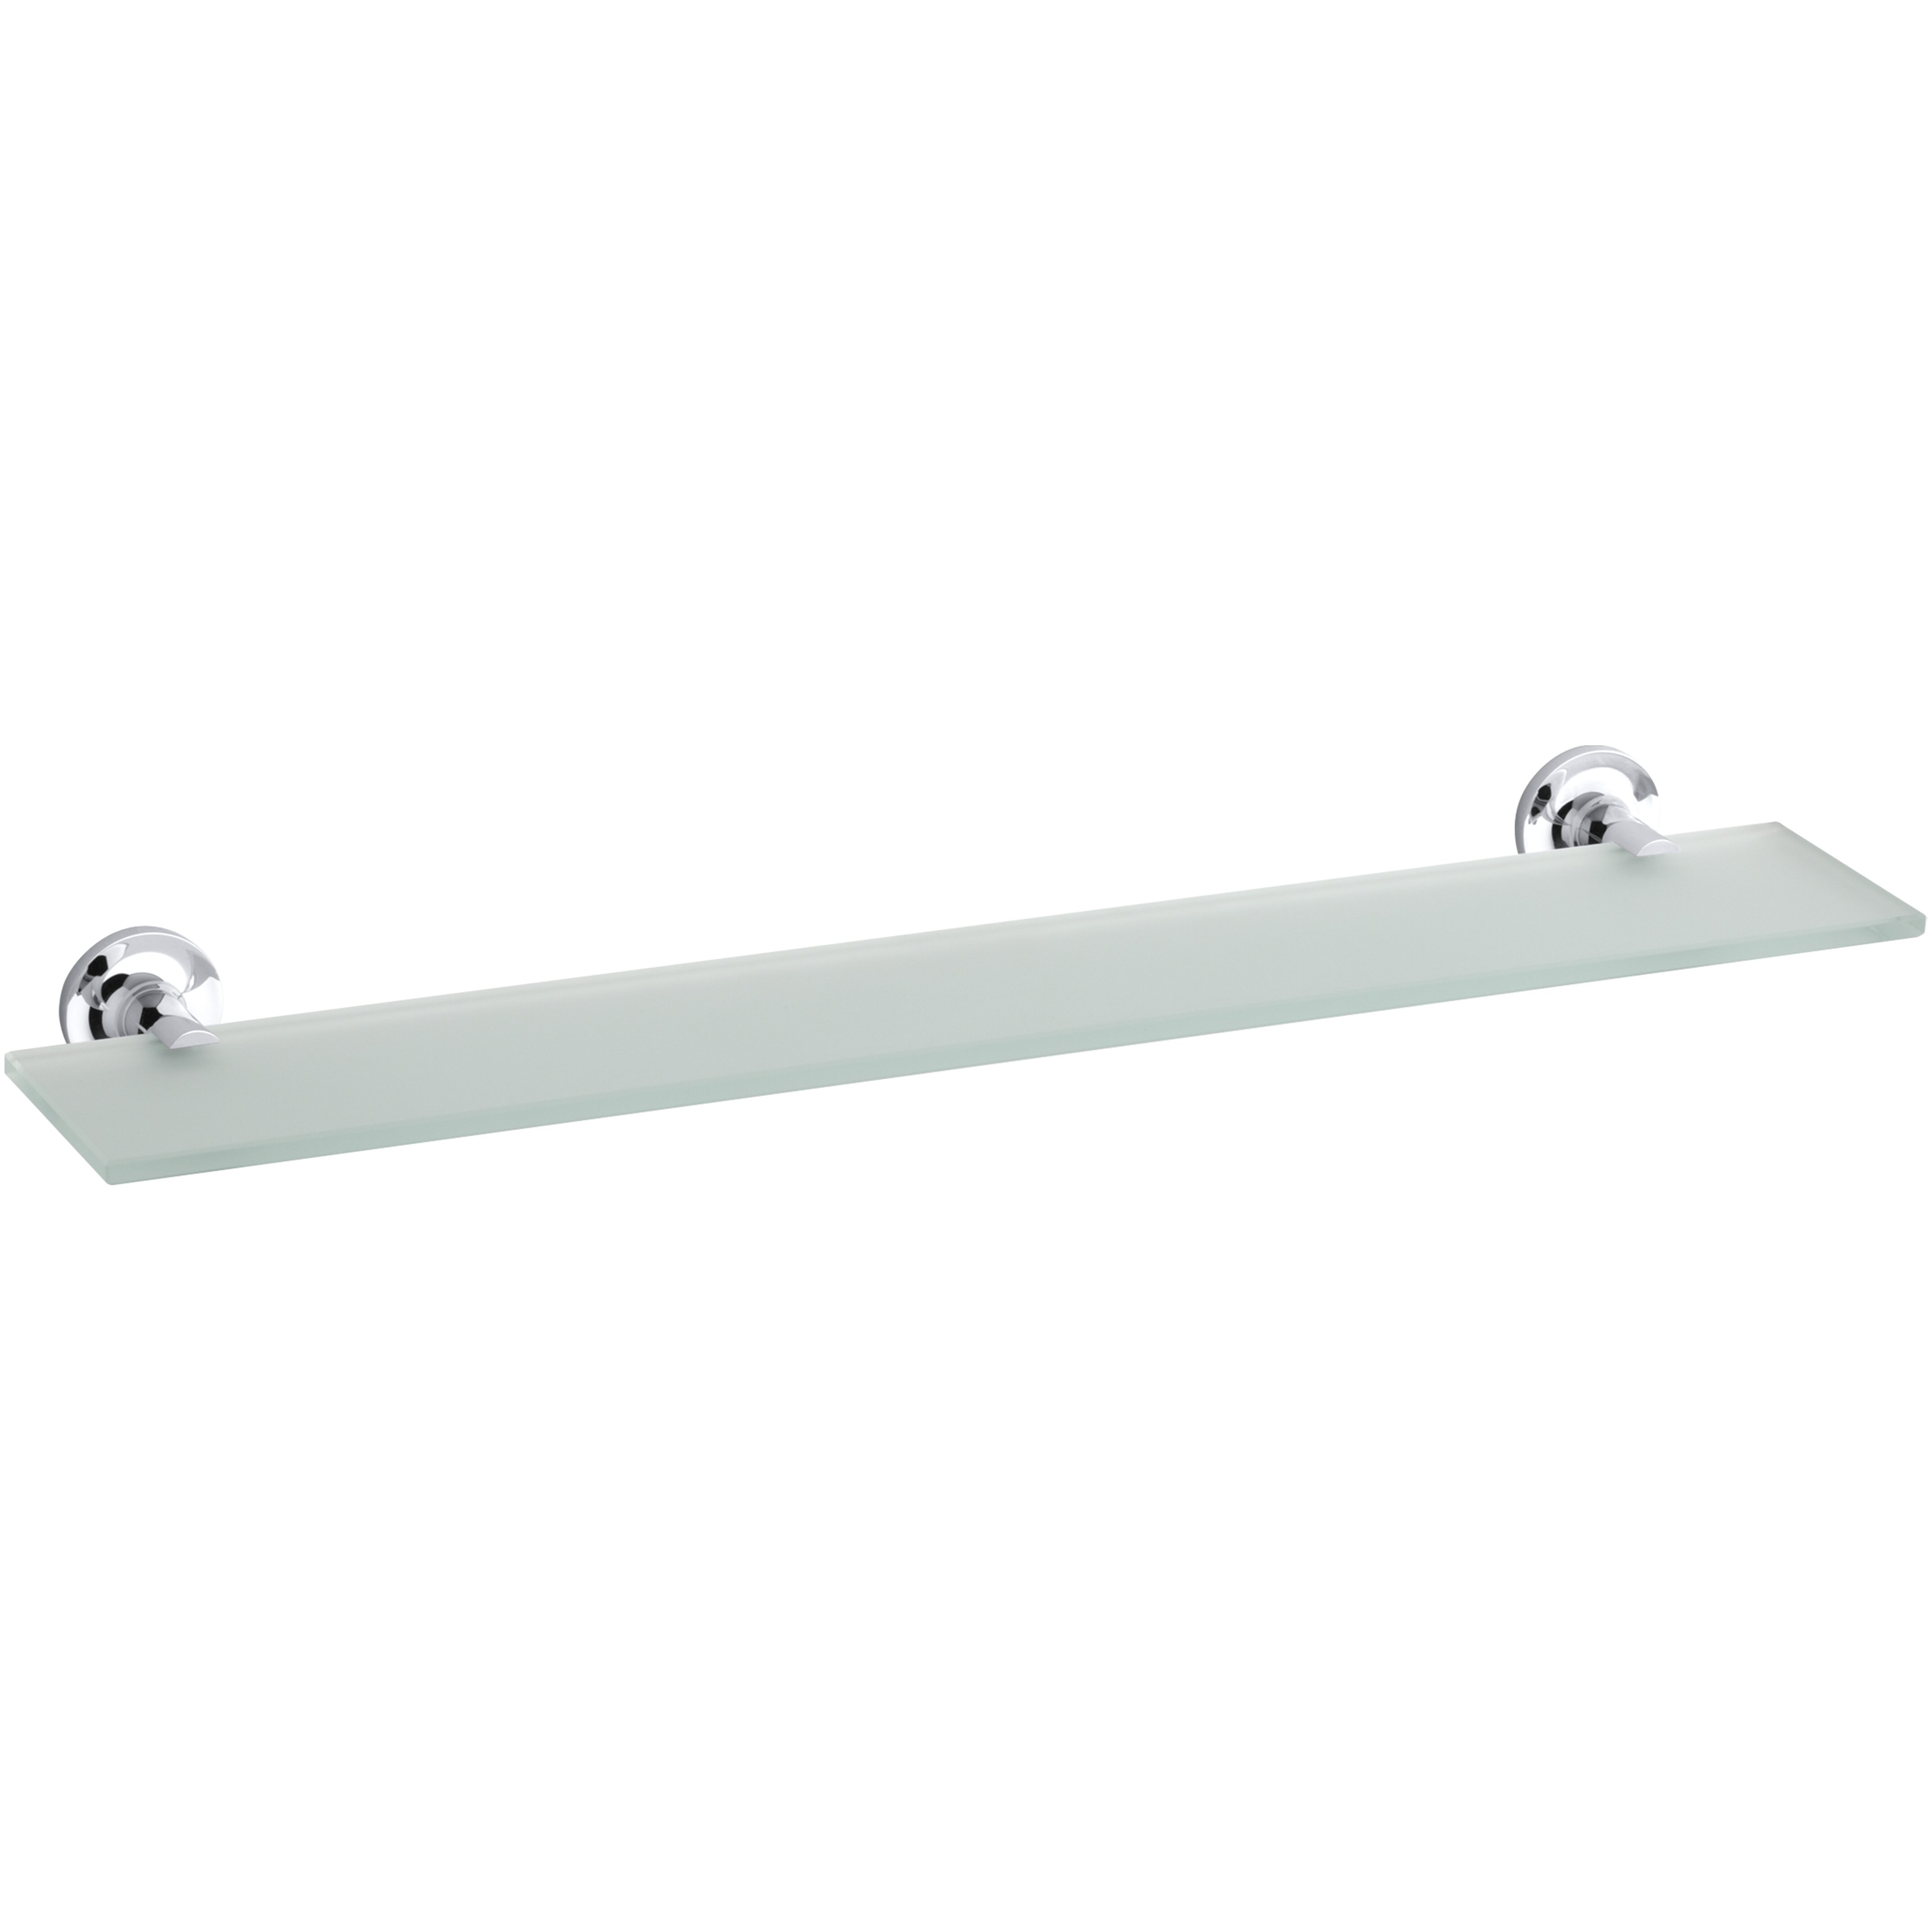 Bathroom Shelf Kohler Purist 225 W Bathroom Shelf Reviews Wayfair